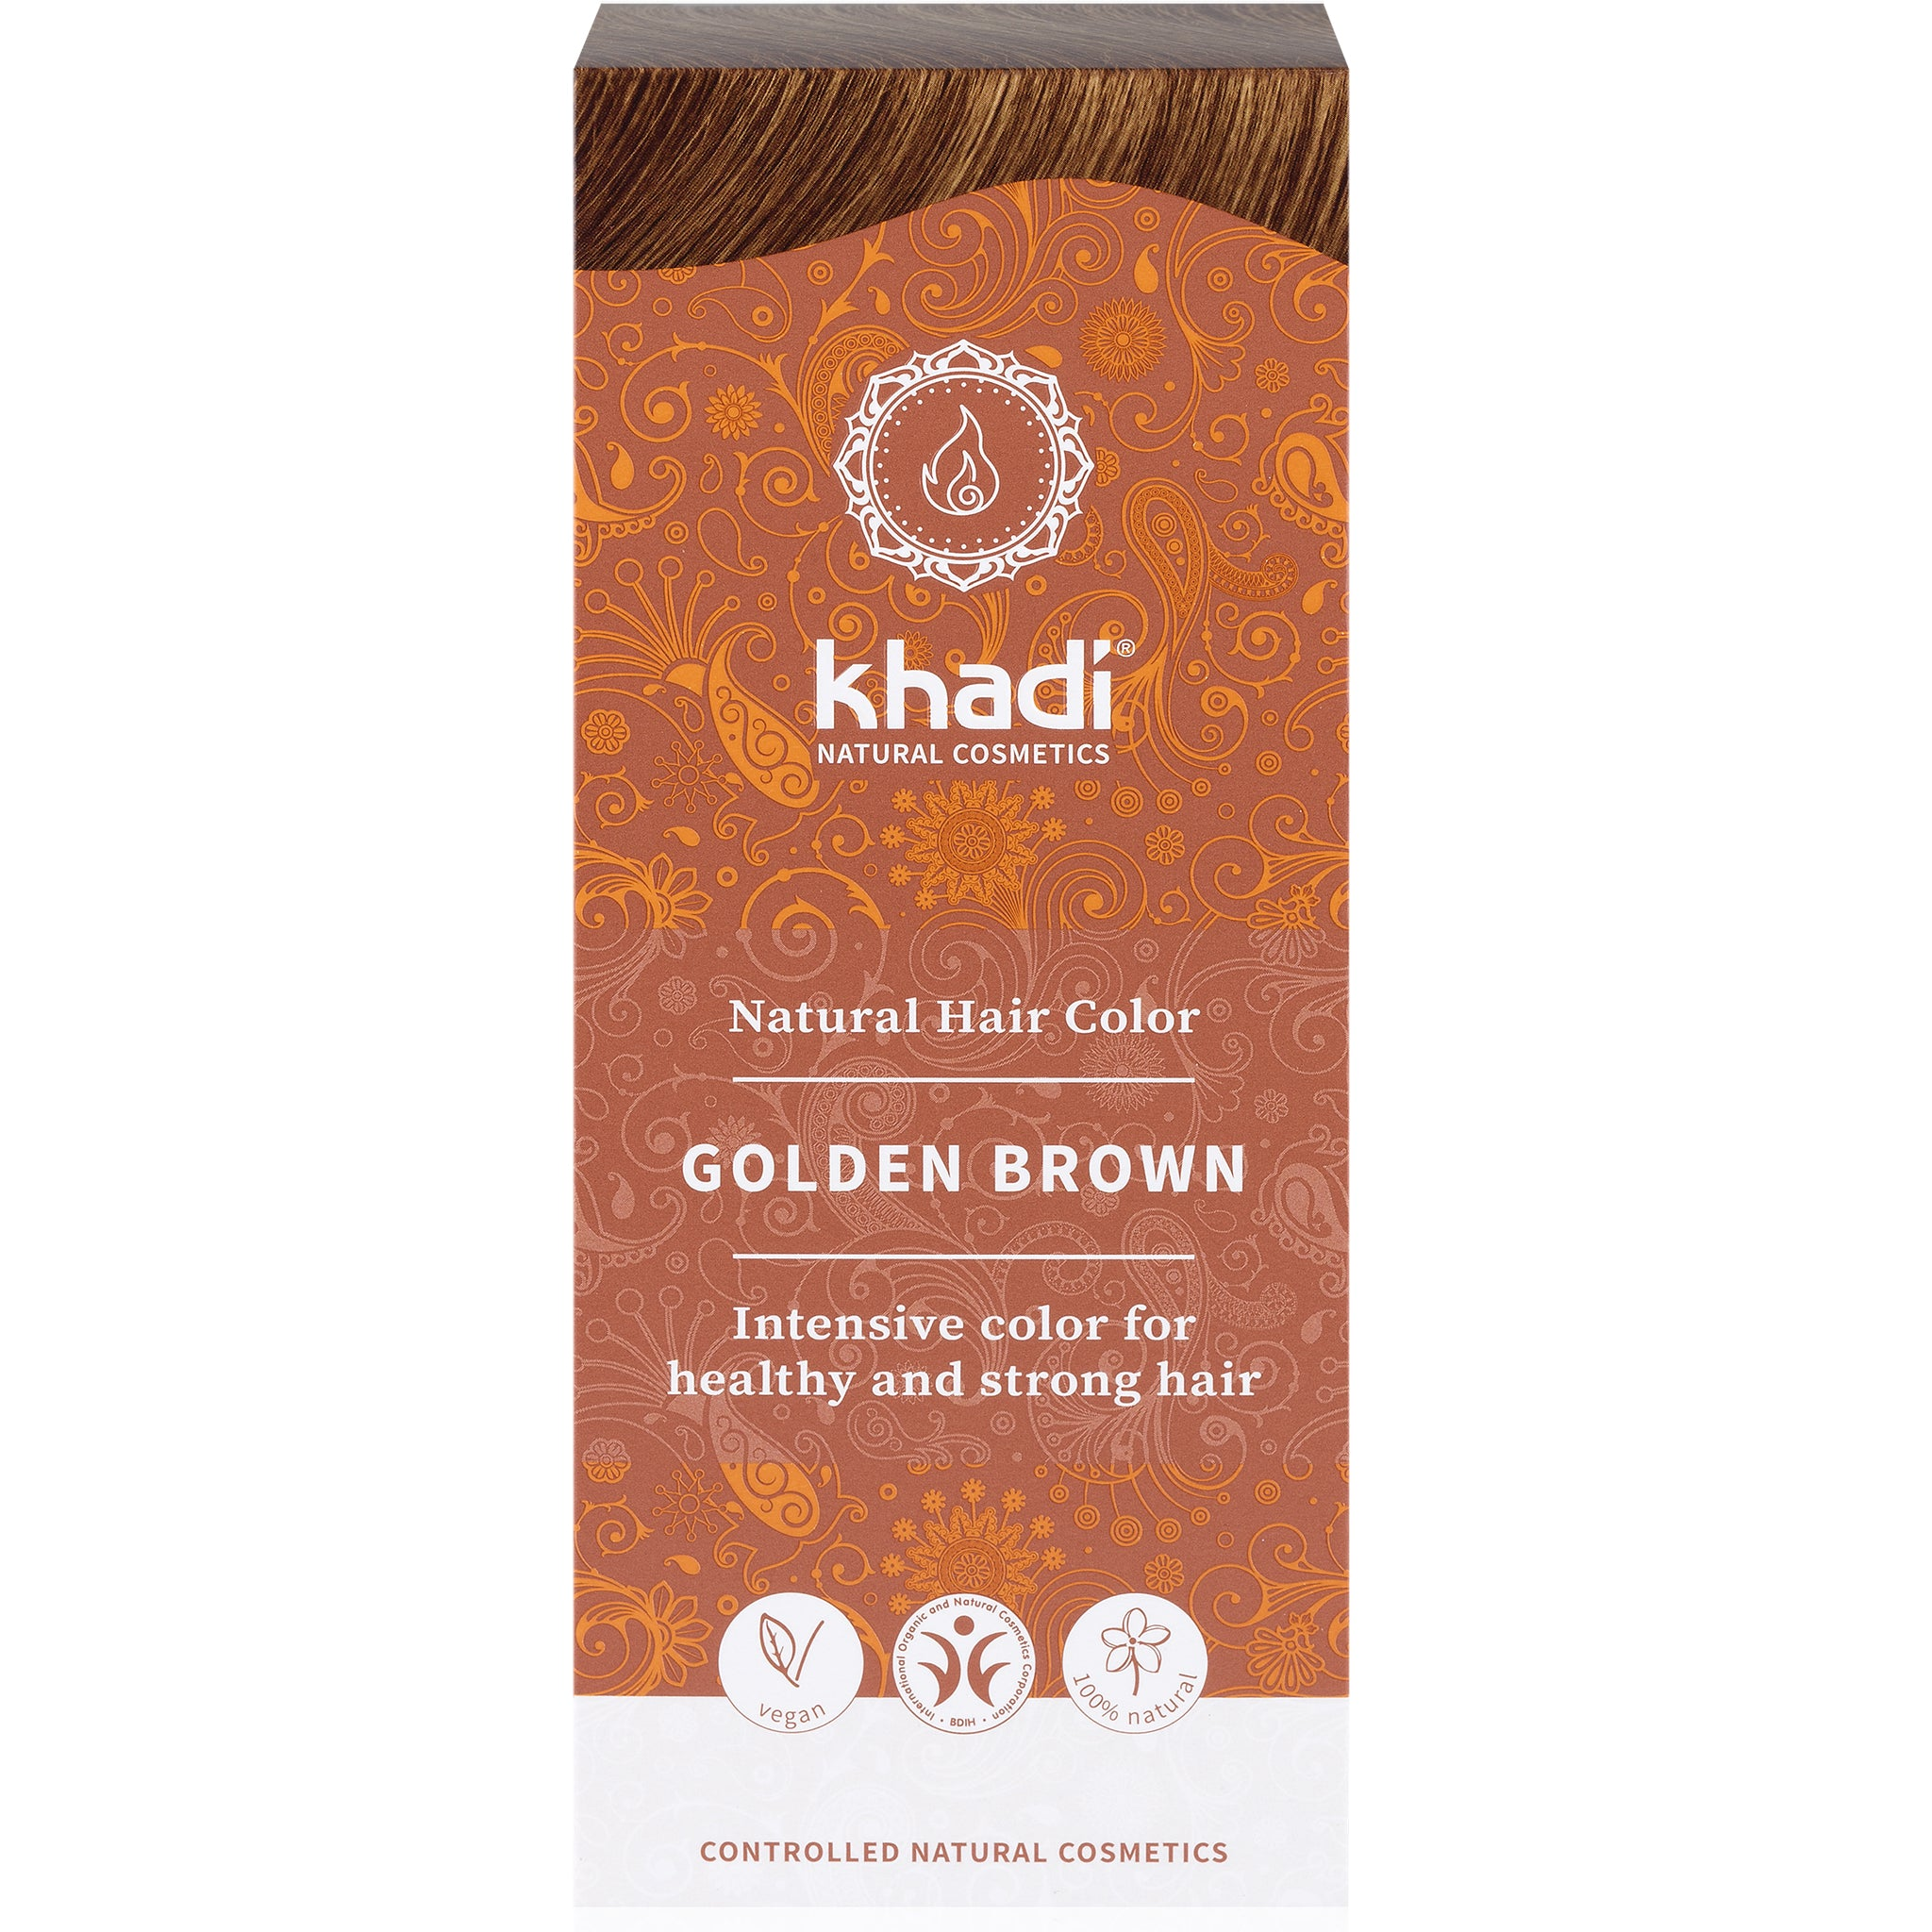 Herbal Hair Colour - Golden Brown